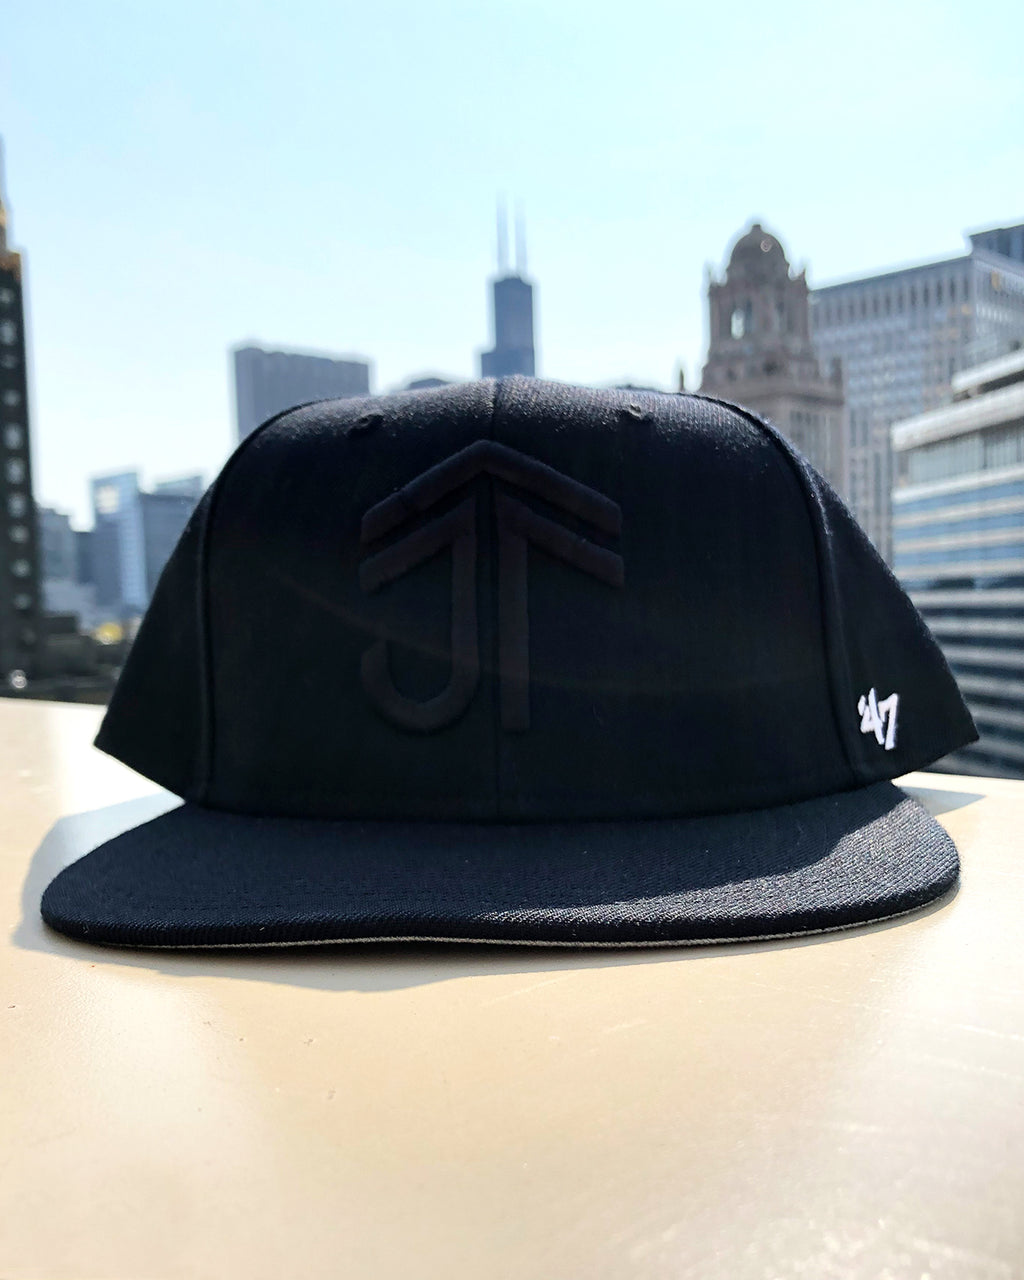 JTF All Black Cap